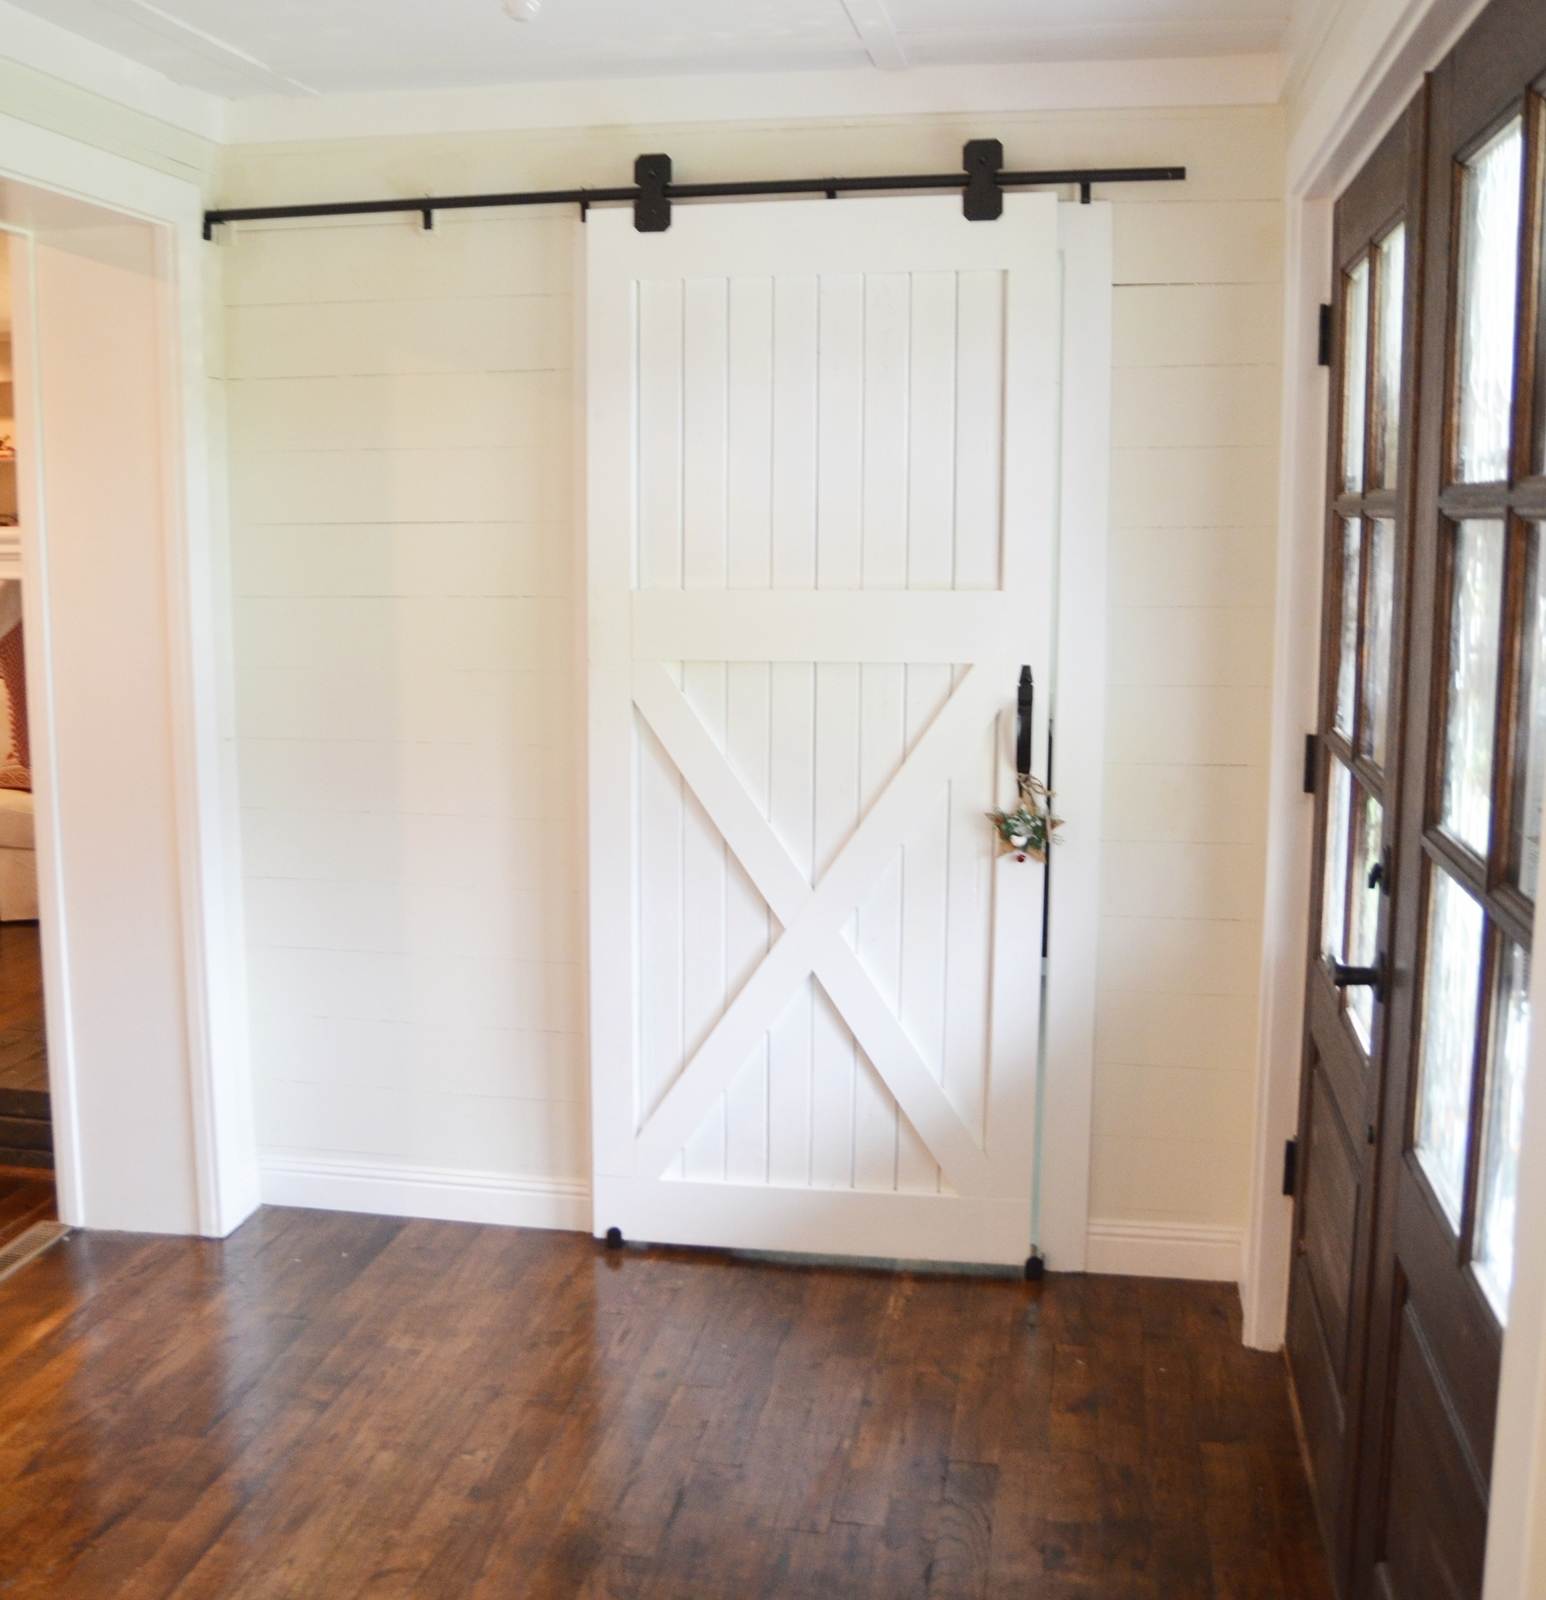 Diy barn door designs and tutorials from thrifty decor chick for Barn door design ideas